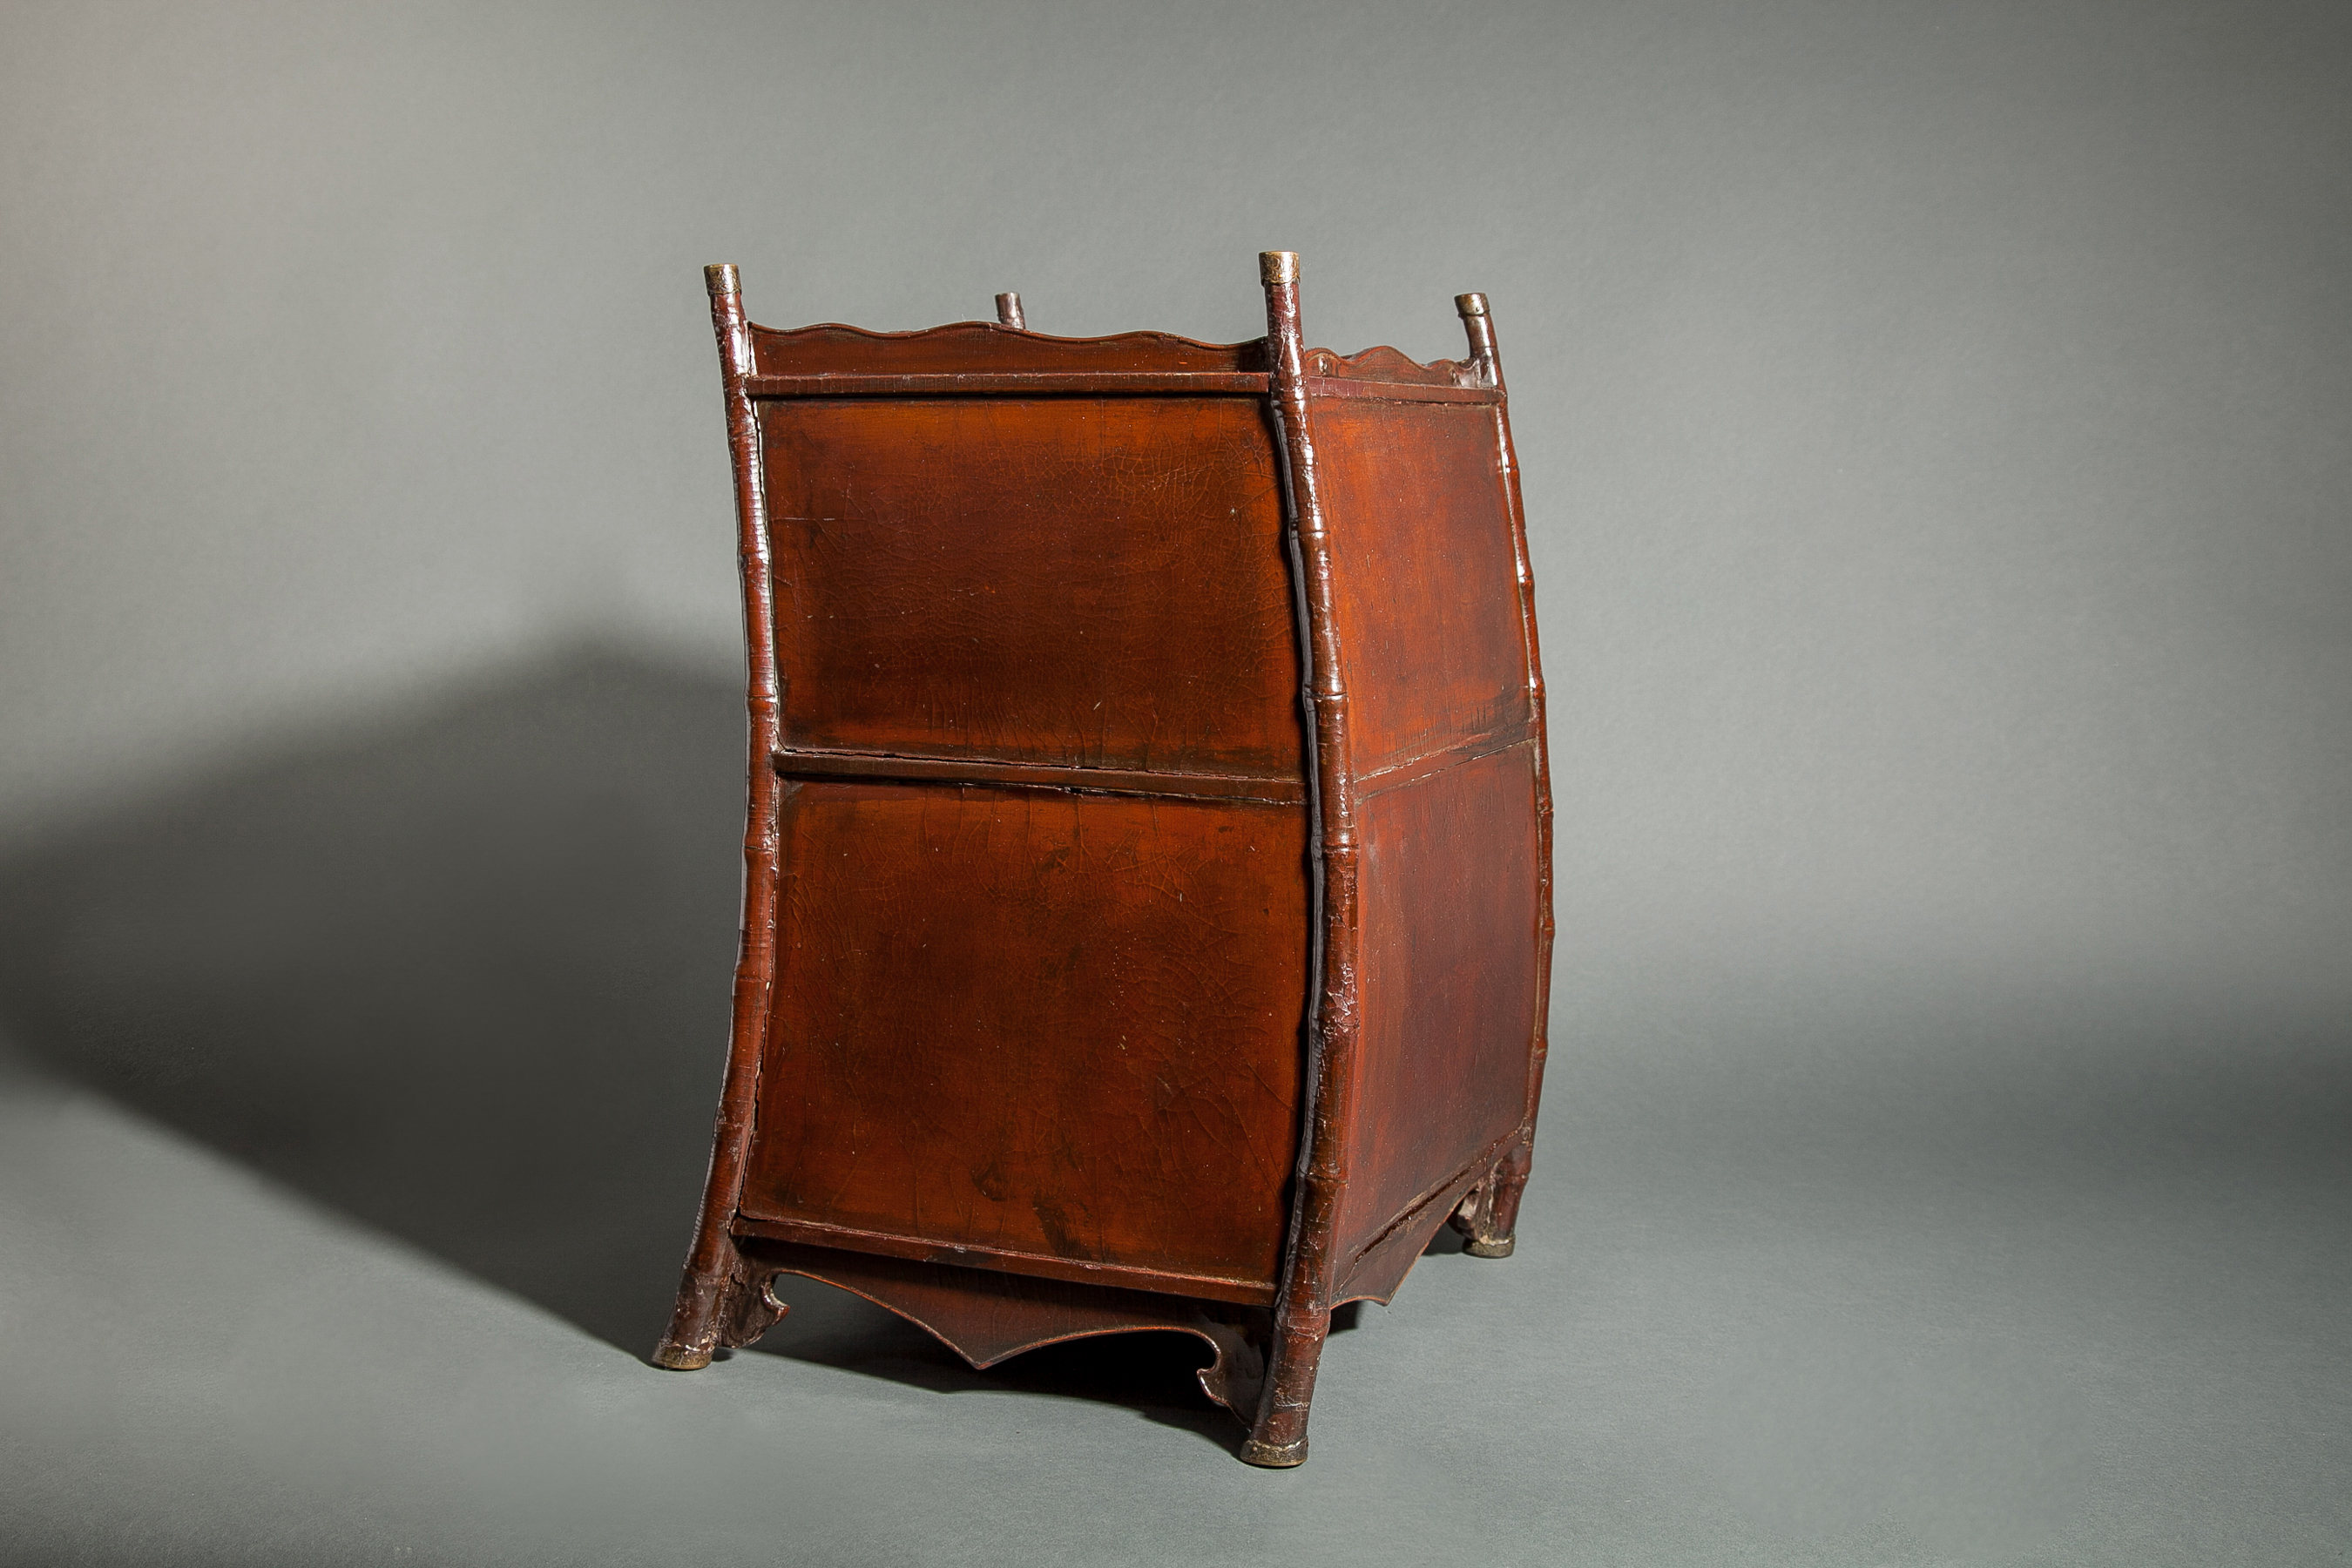 Japanese Monk's Chest